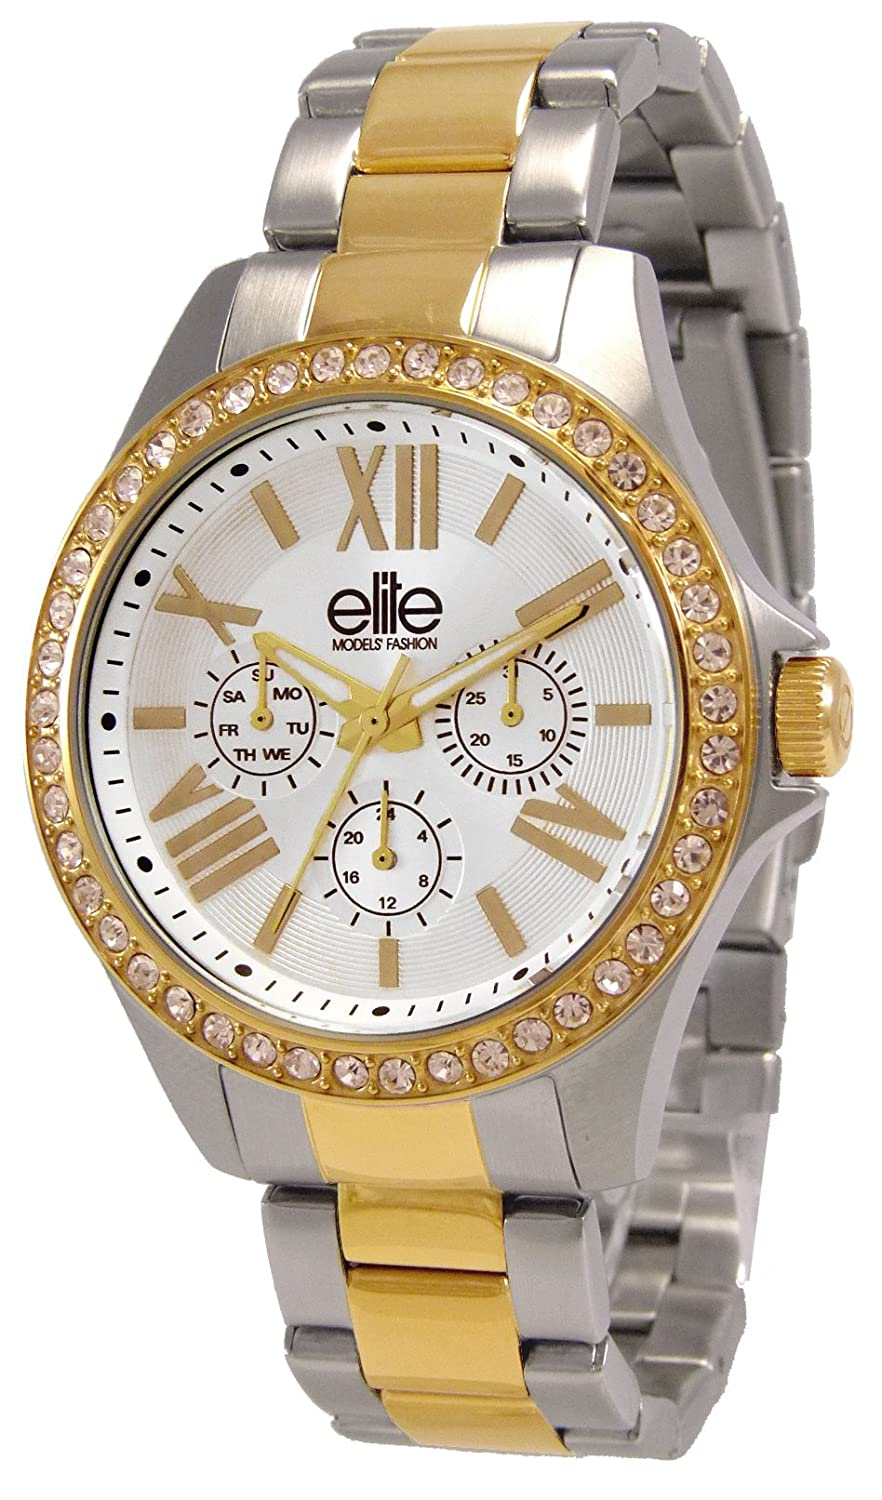 Elite Models' Fashion Damen-Armbanduhr Analog Quarz bicolor - mehrfarbig E54354G-304